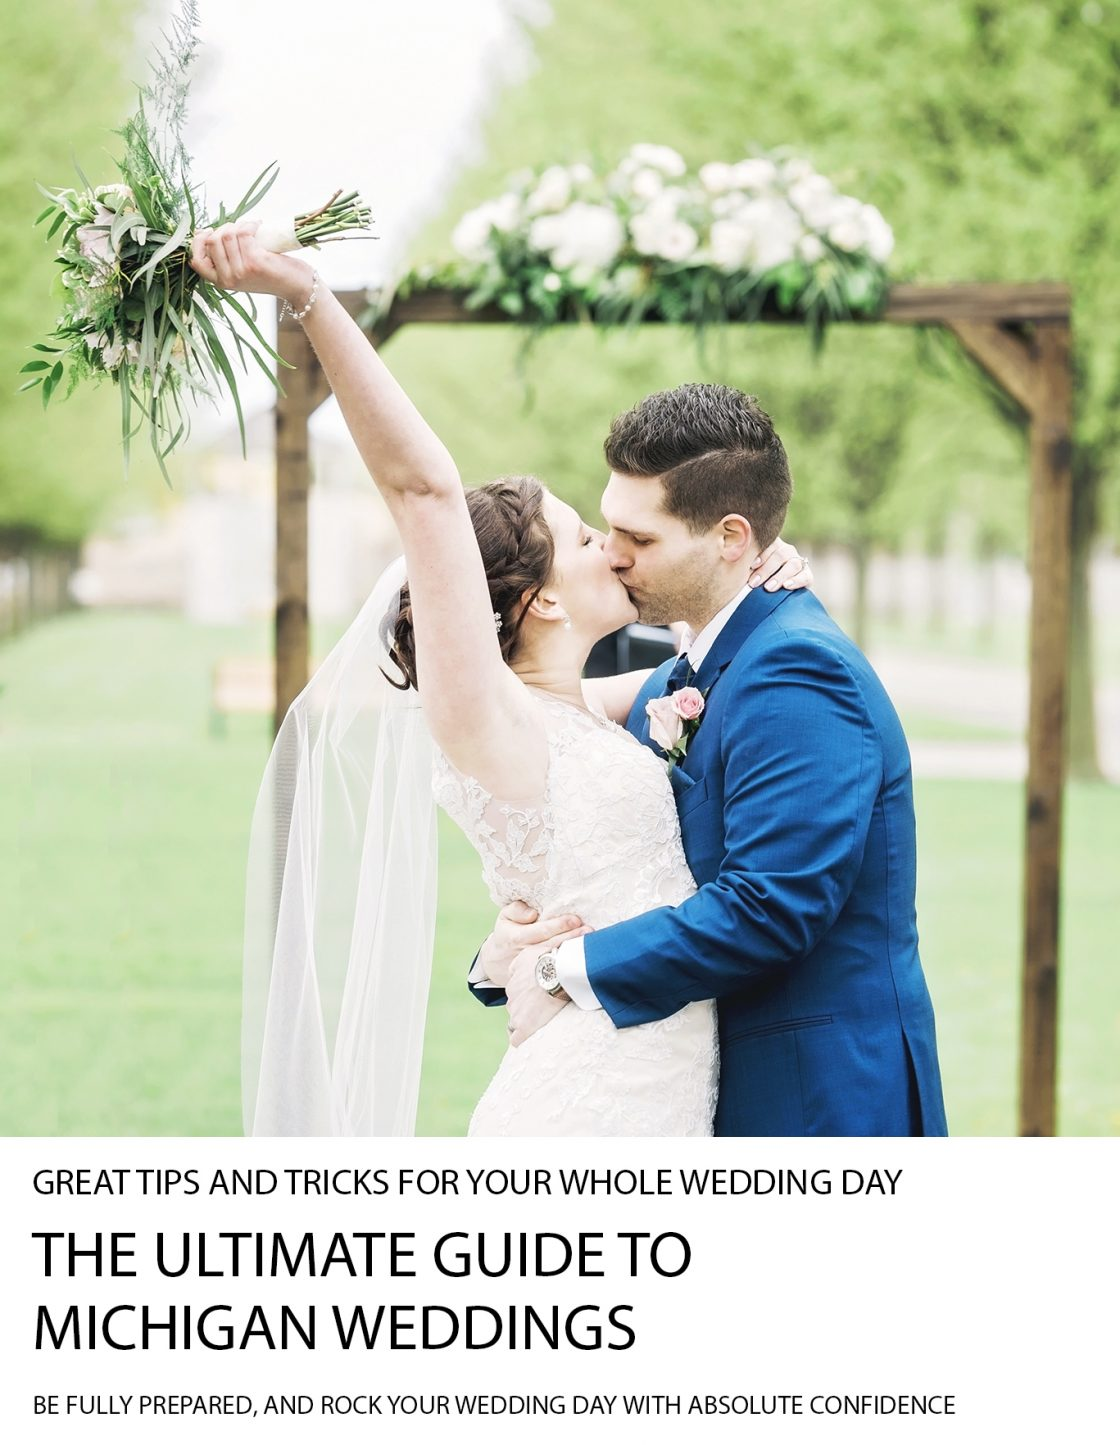 The Ultimate Guide to Michigan Weddings